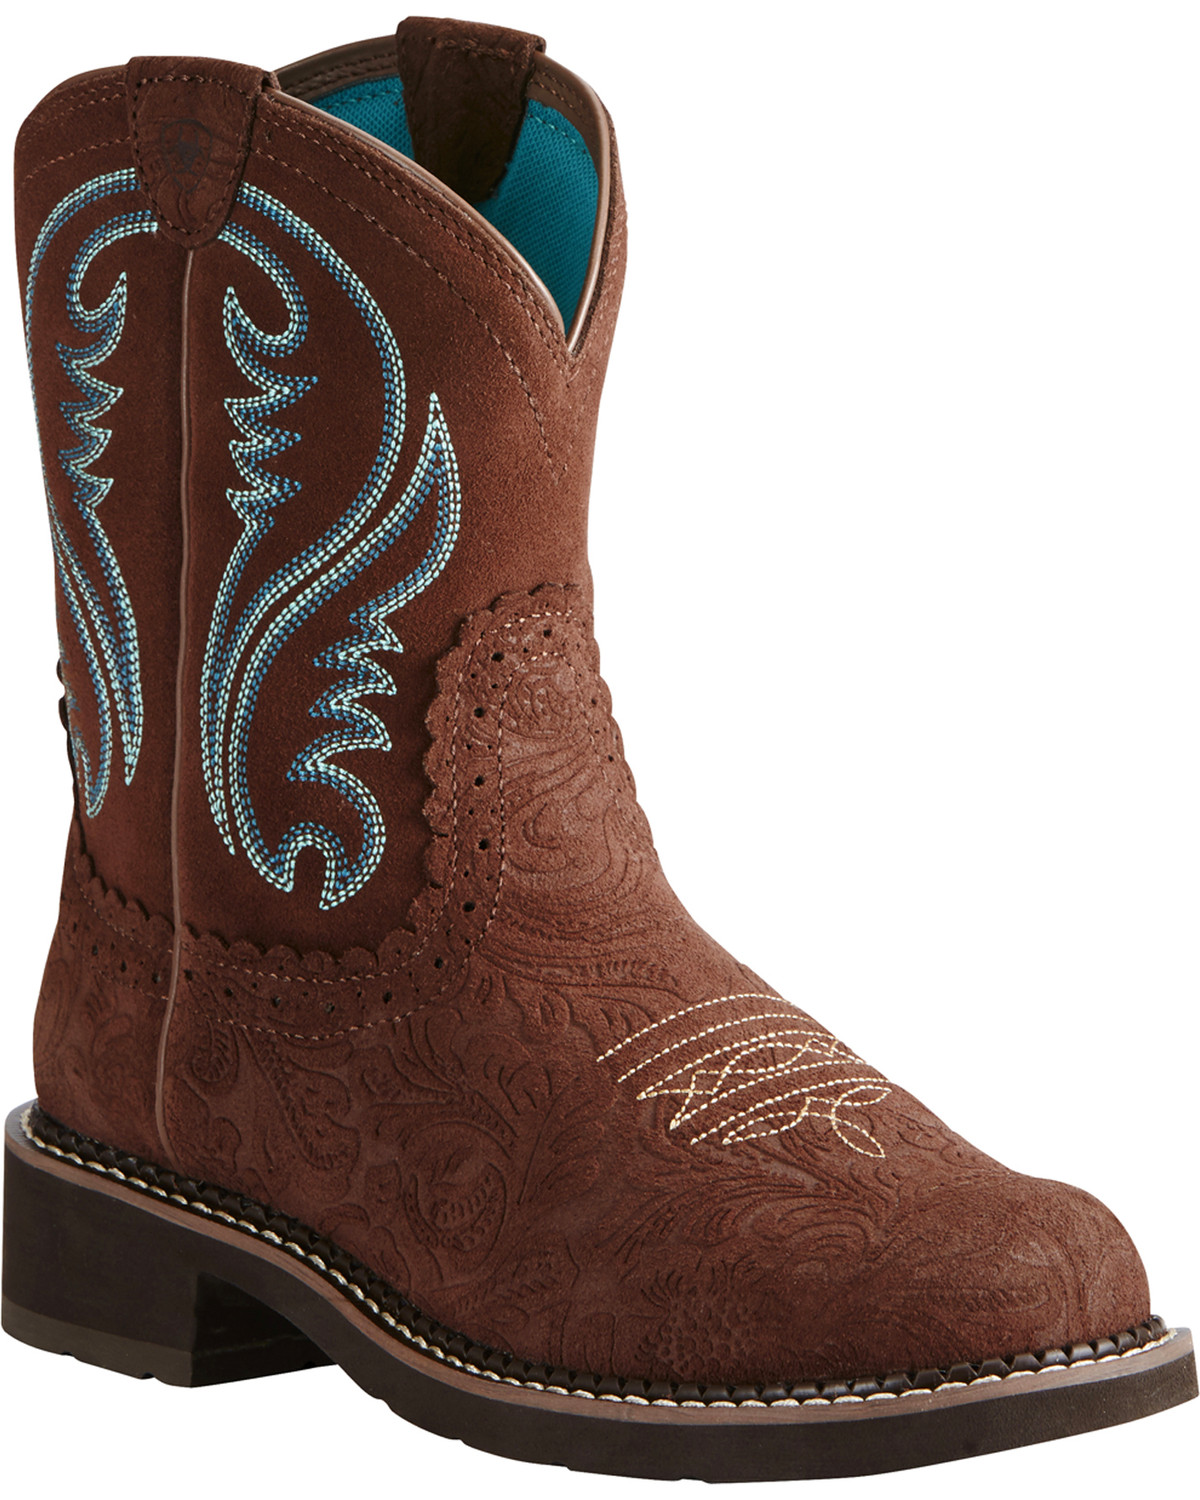 3d6d4071d8f Ariat Women's Fatbaby Heritage Western Boots